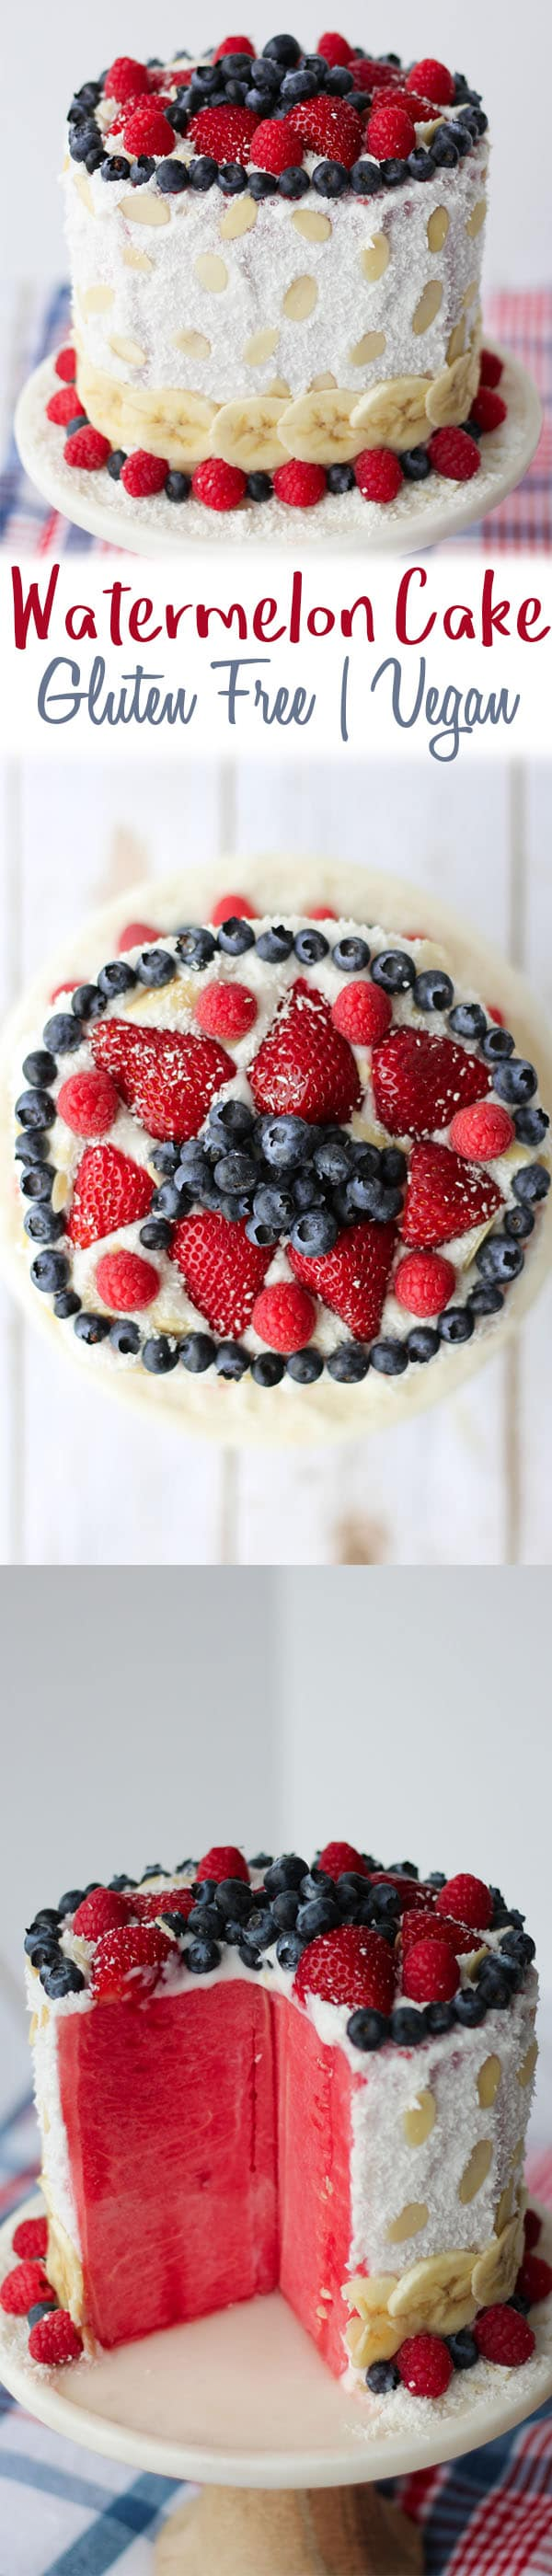 For all my American friends, this red, white and blue Vegan Watermelon Cake will be the healthiest dessert at your 4th of July party.